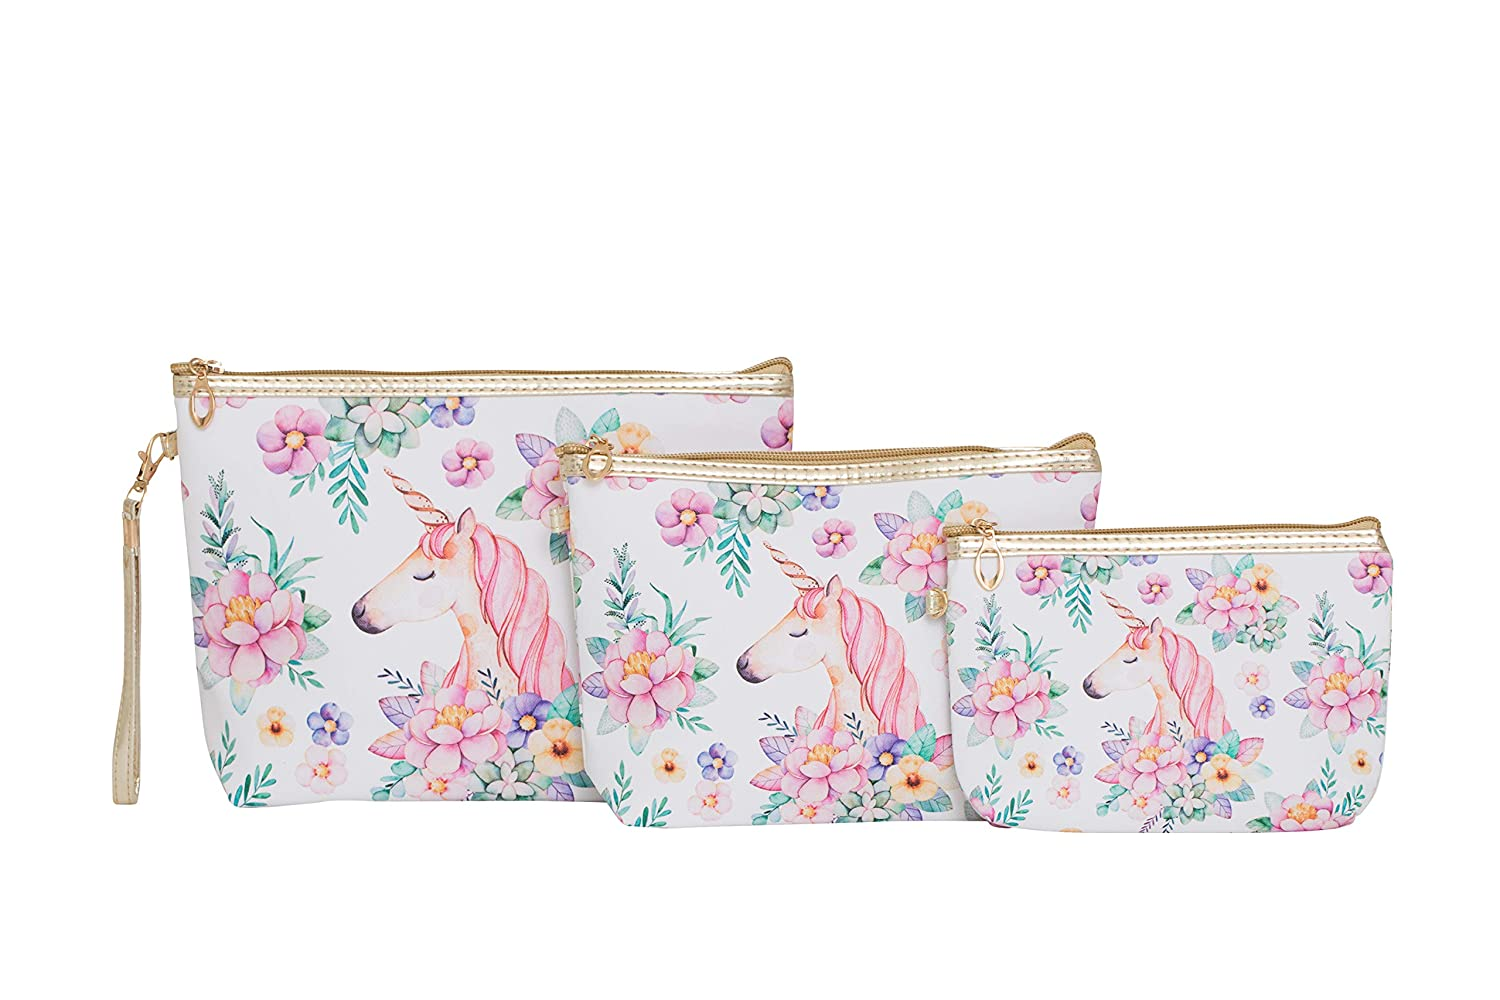 Pink Unicorn Makeup Bag Travel Set of 3 With Zippers. Great Cosmetic Case Organizer for Handbag, Purse, Luggage or Backpack.